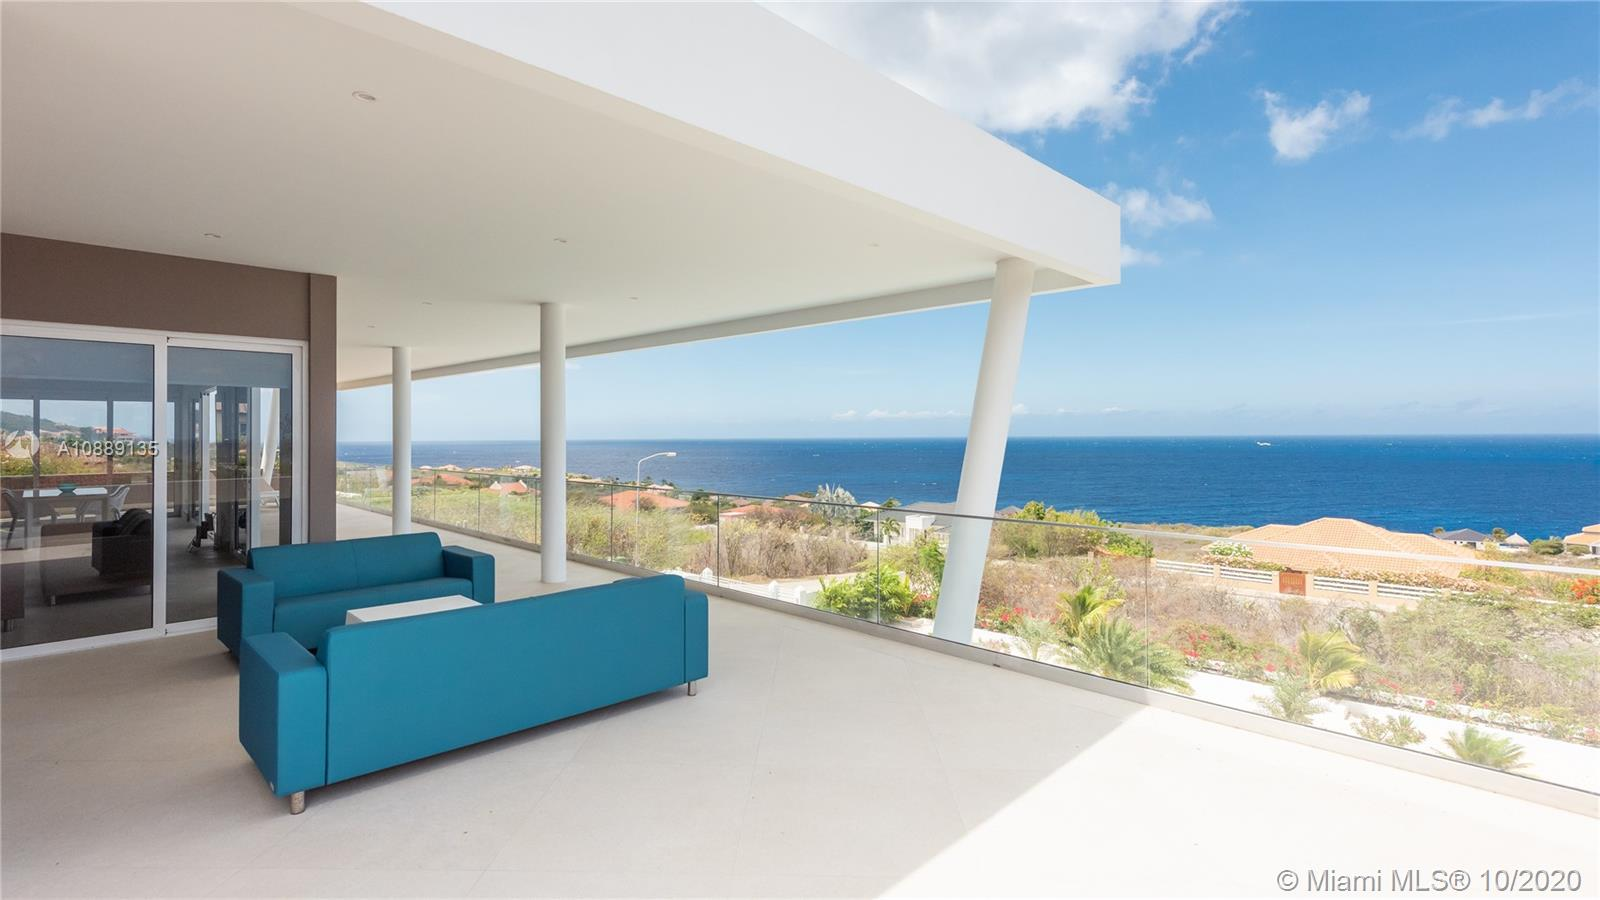 The Villa comes fully furnished with brand new modern indoor/outdoor furnitings, sleeps 12 guests.The Villa consists of 2 separate floors and a separate 1 bedroom guest quarters with its own private ensuite and outdoor private patio.